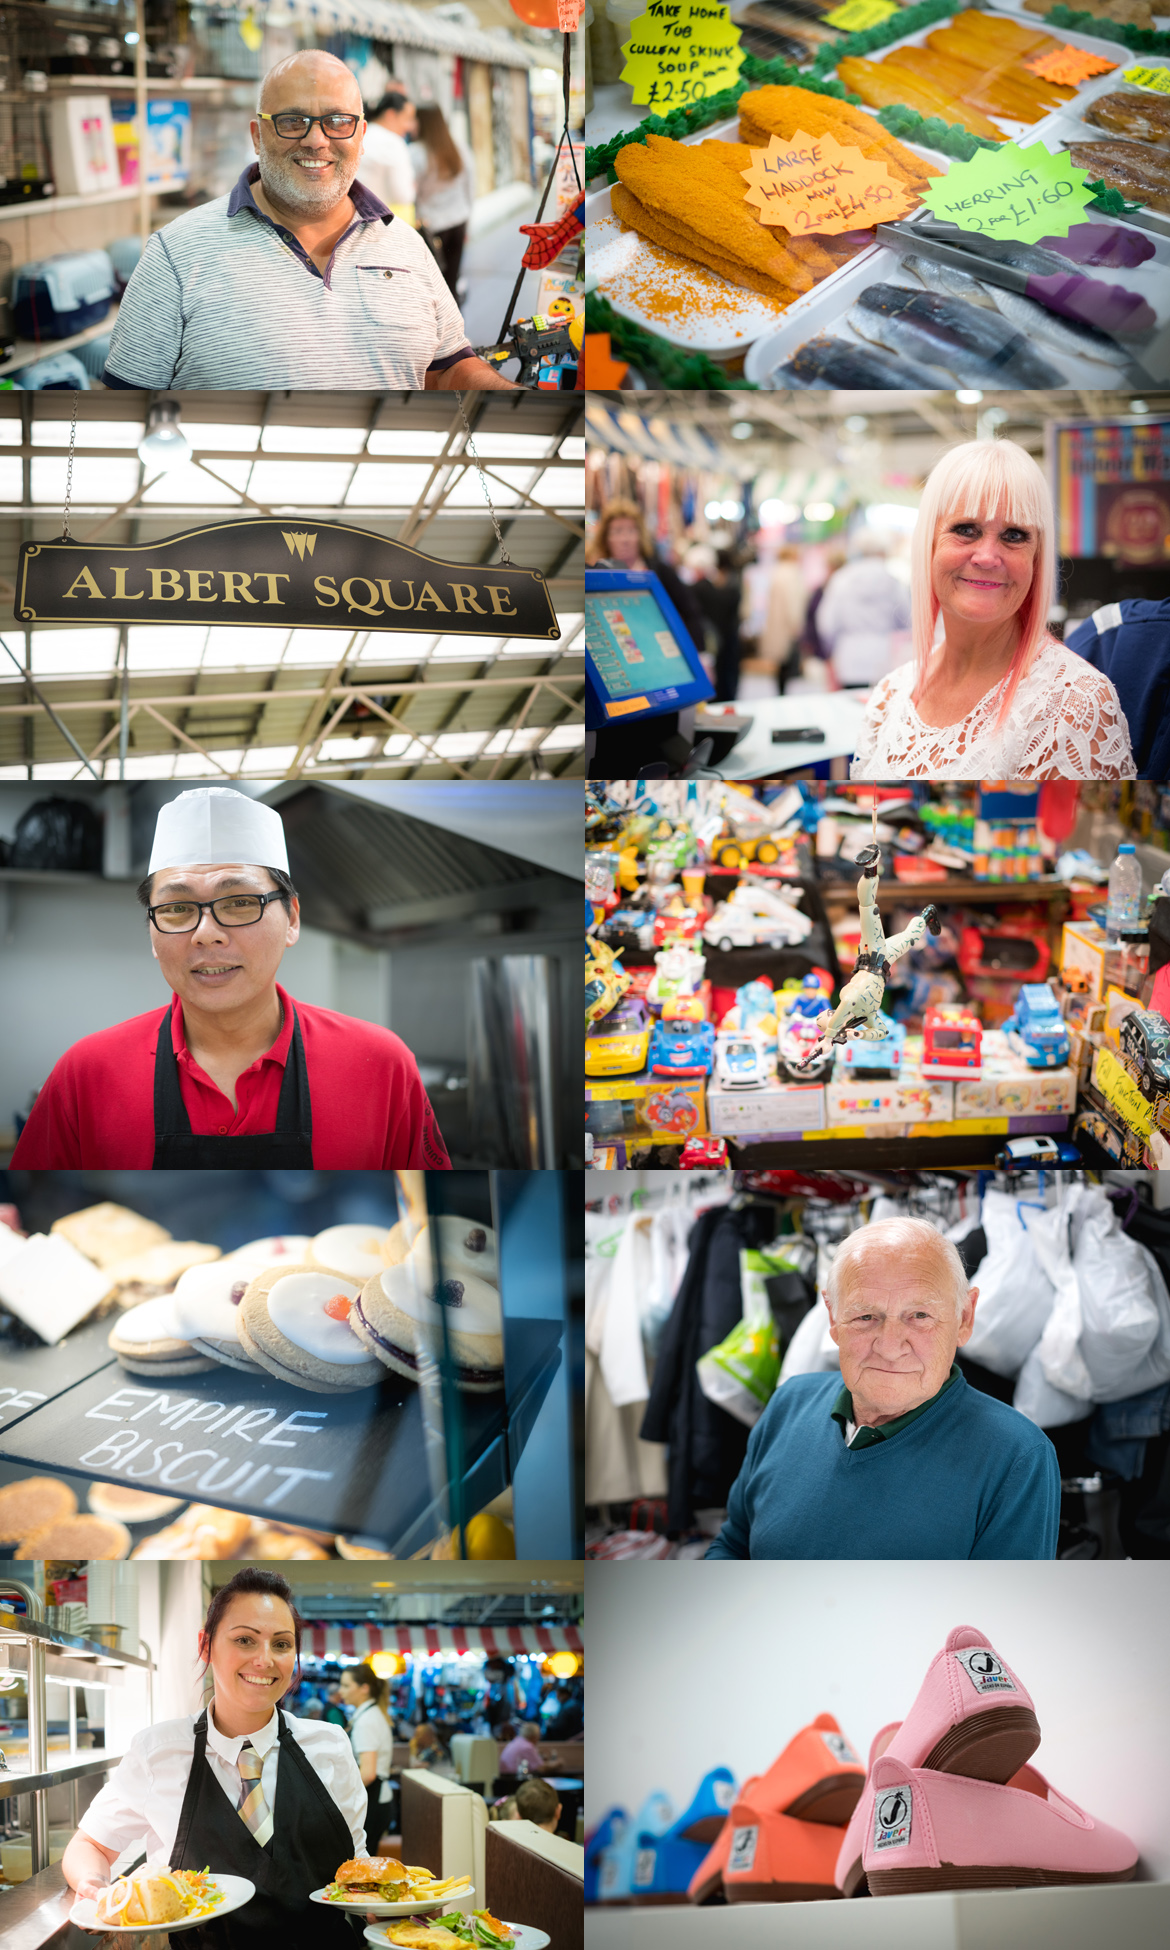 Real Glasgow Professional Photos In Of The - East Enders Market Life